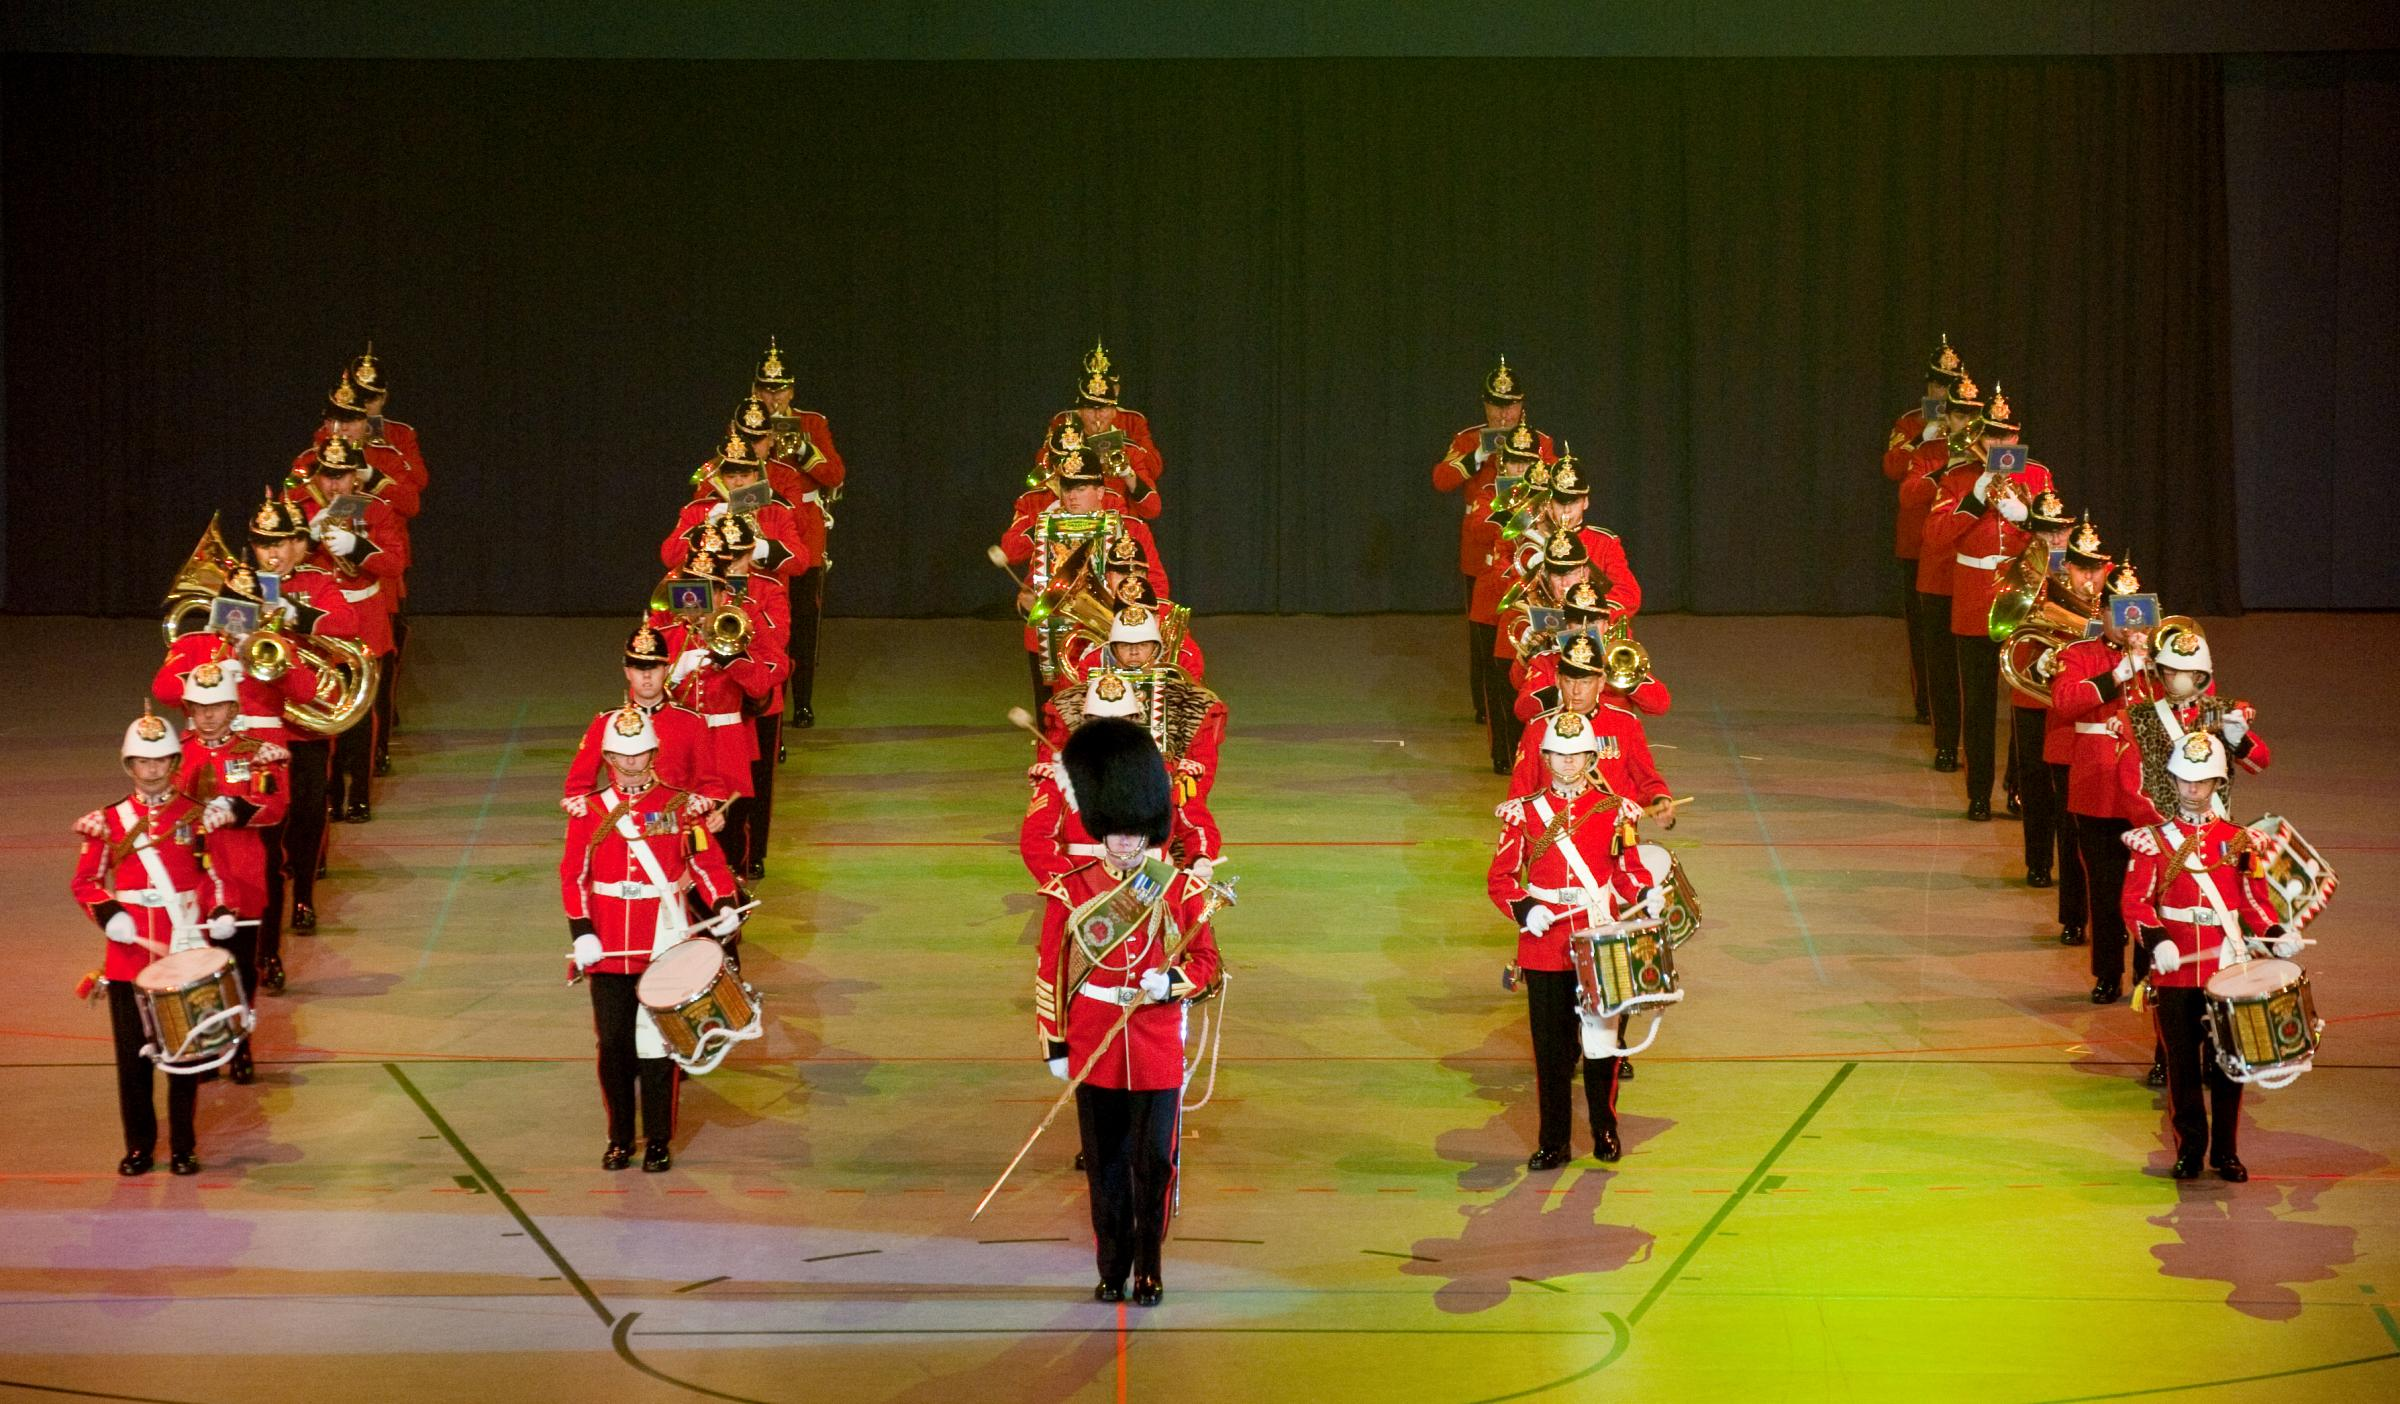 The Band of the Royal Welsh will be at Denbigh Town Hall on Sunday